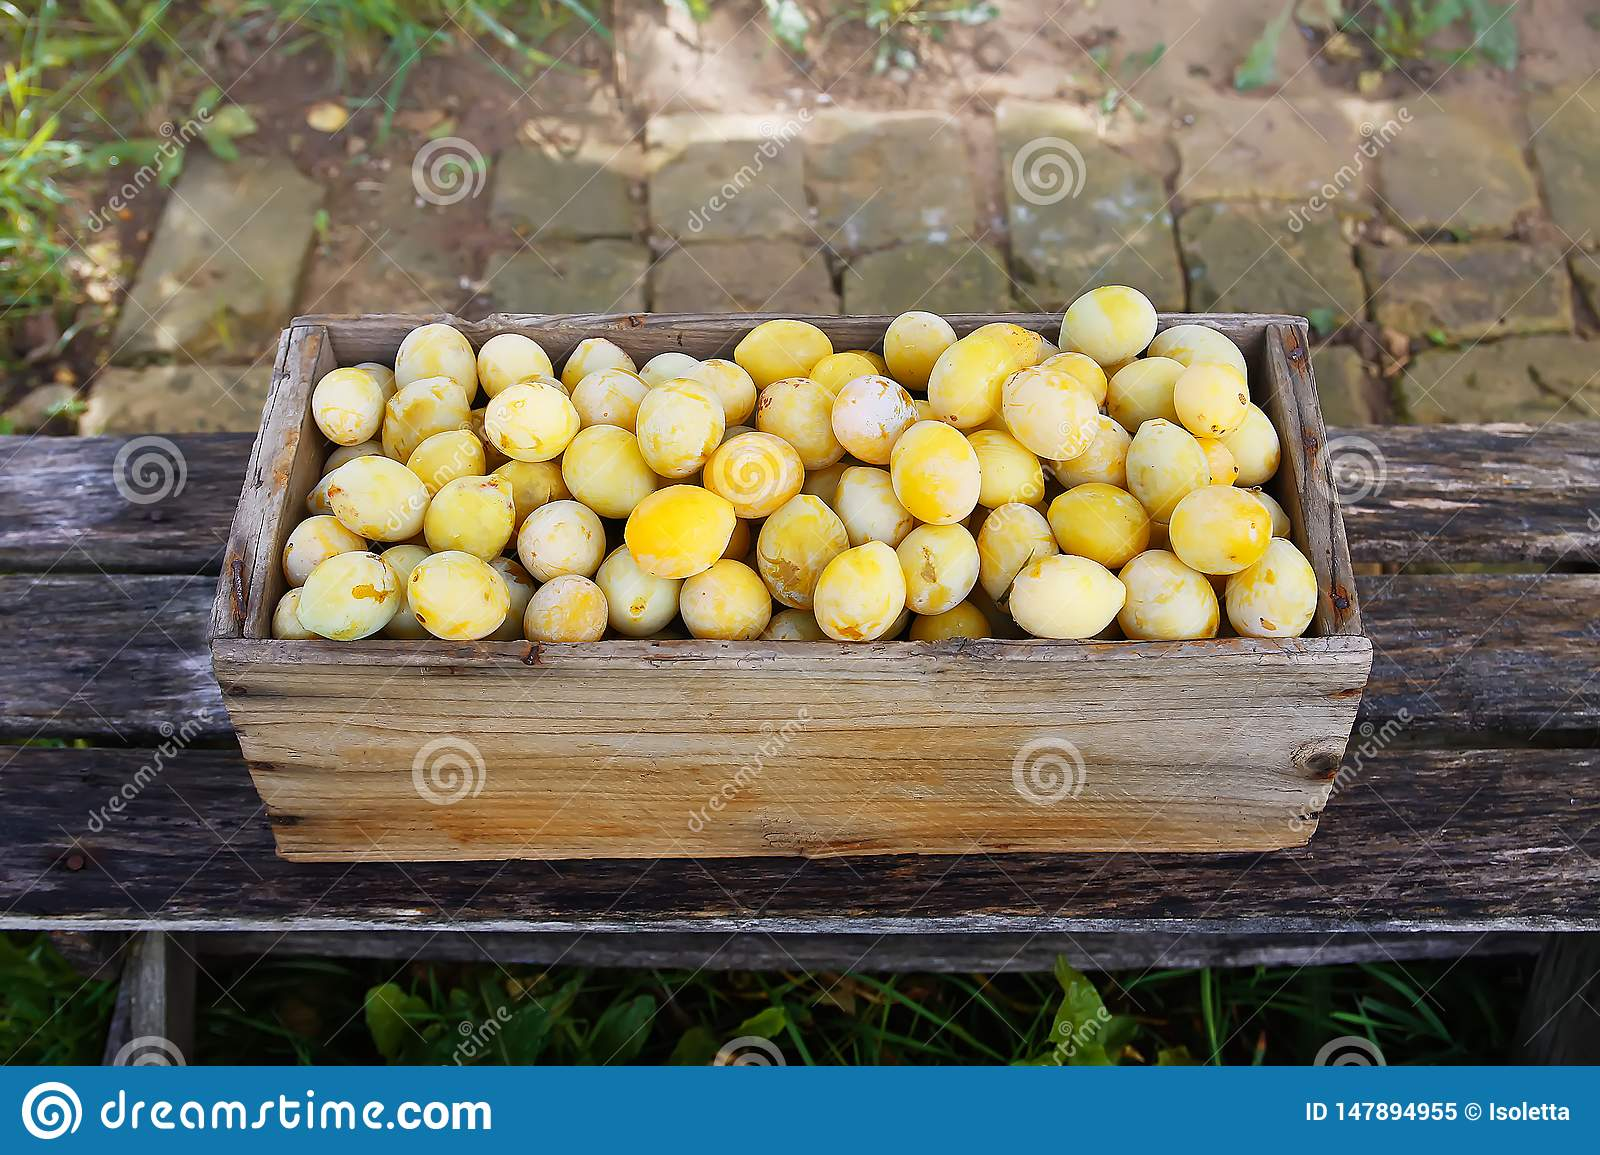 Fresh yellow plums. Ripe fruits in a wooden box on boards background